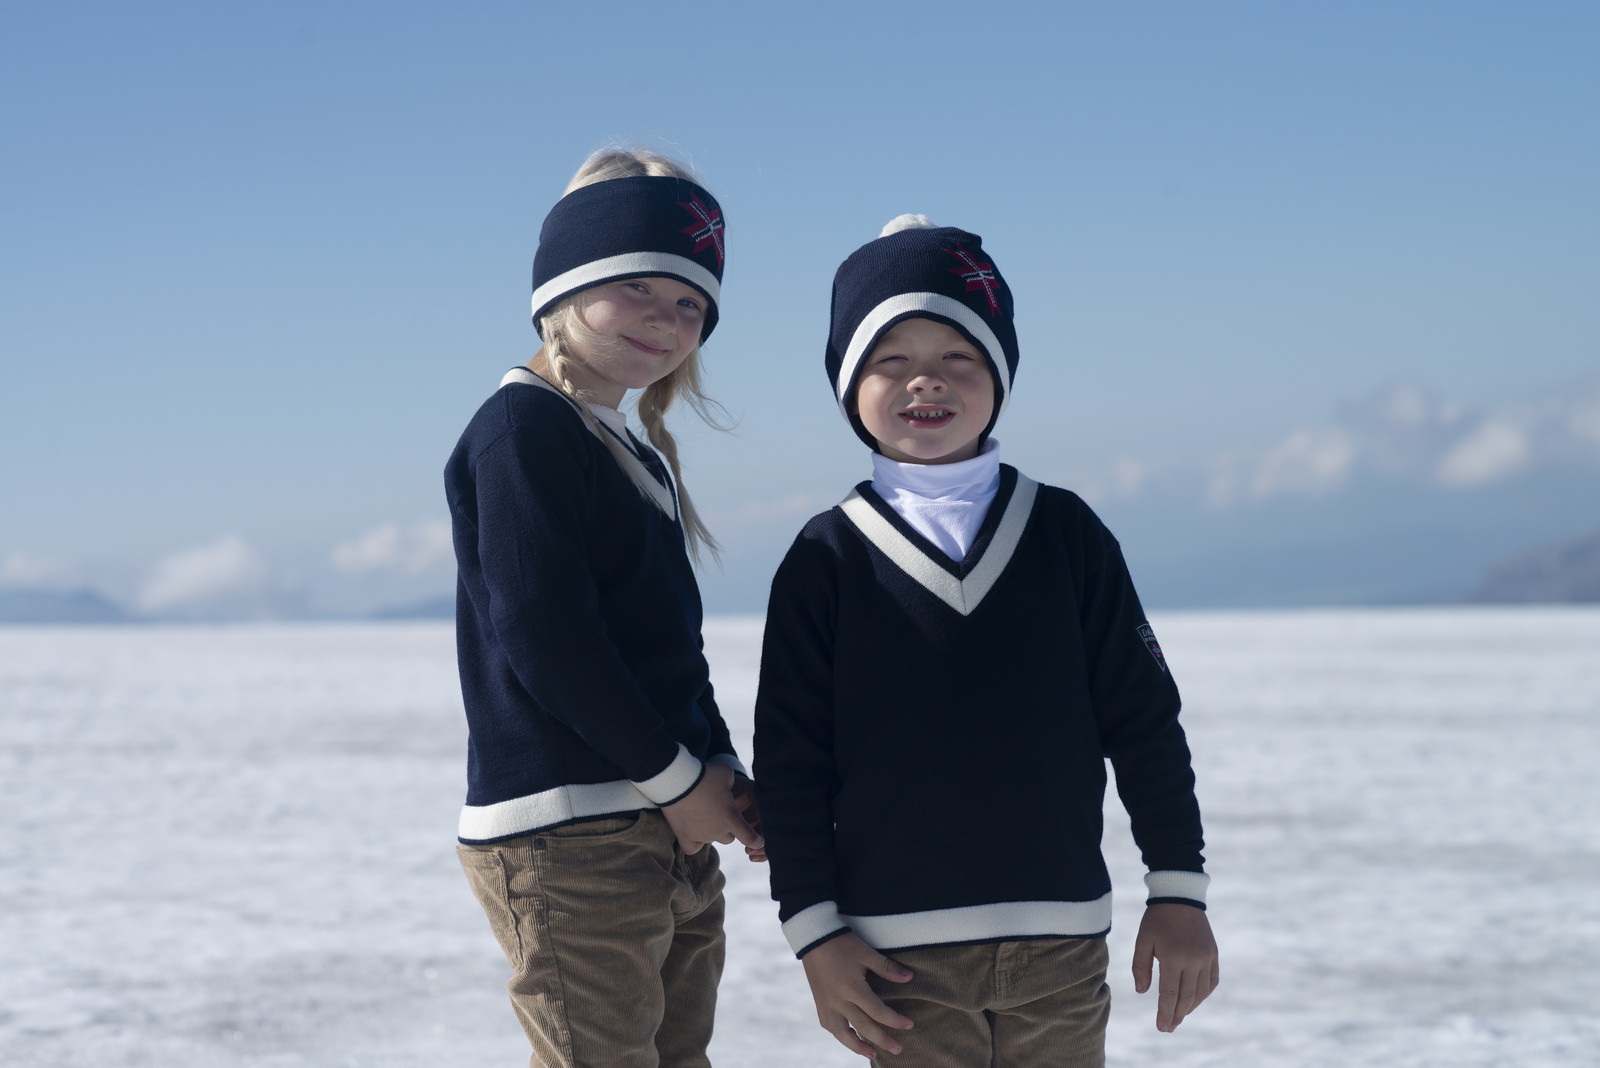 Children wearing Dale of Norway Morgedal Sweater, Childrens - Navy/Off White, 94031-C